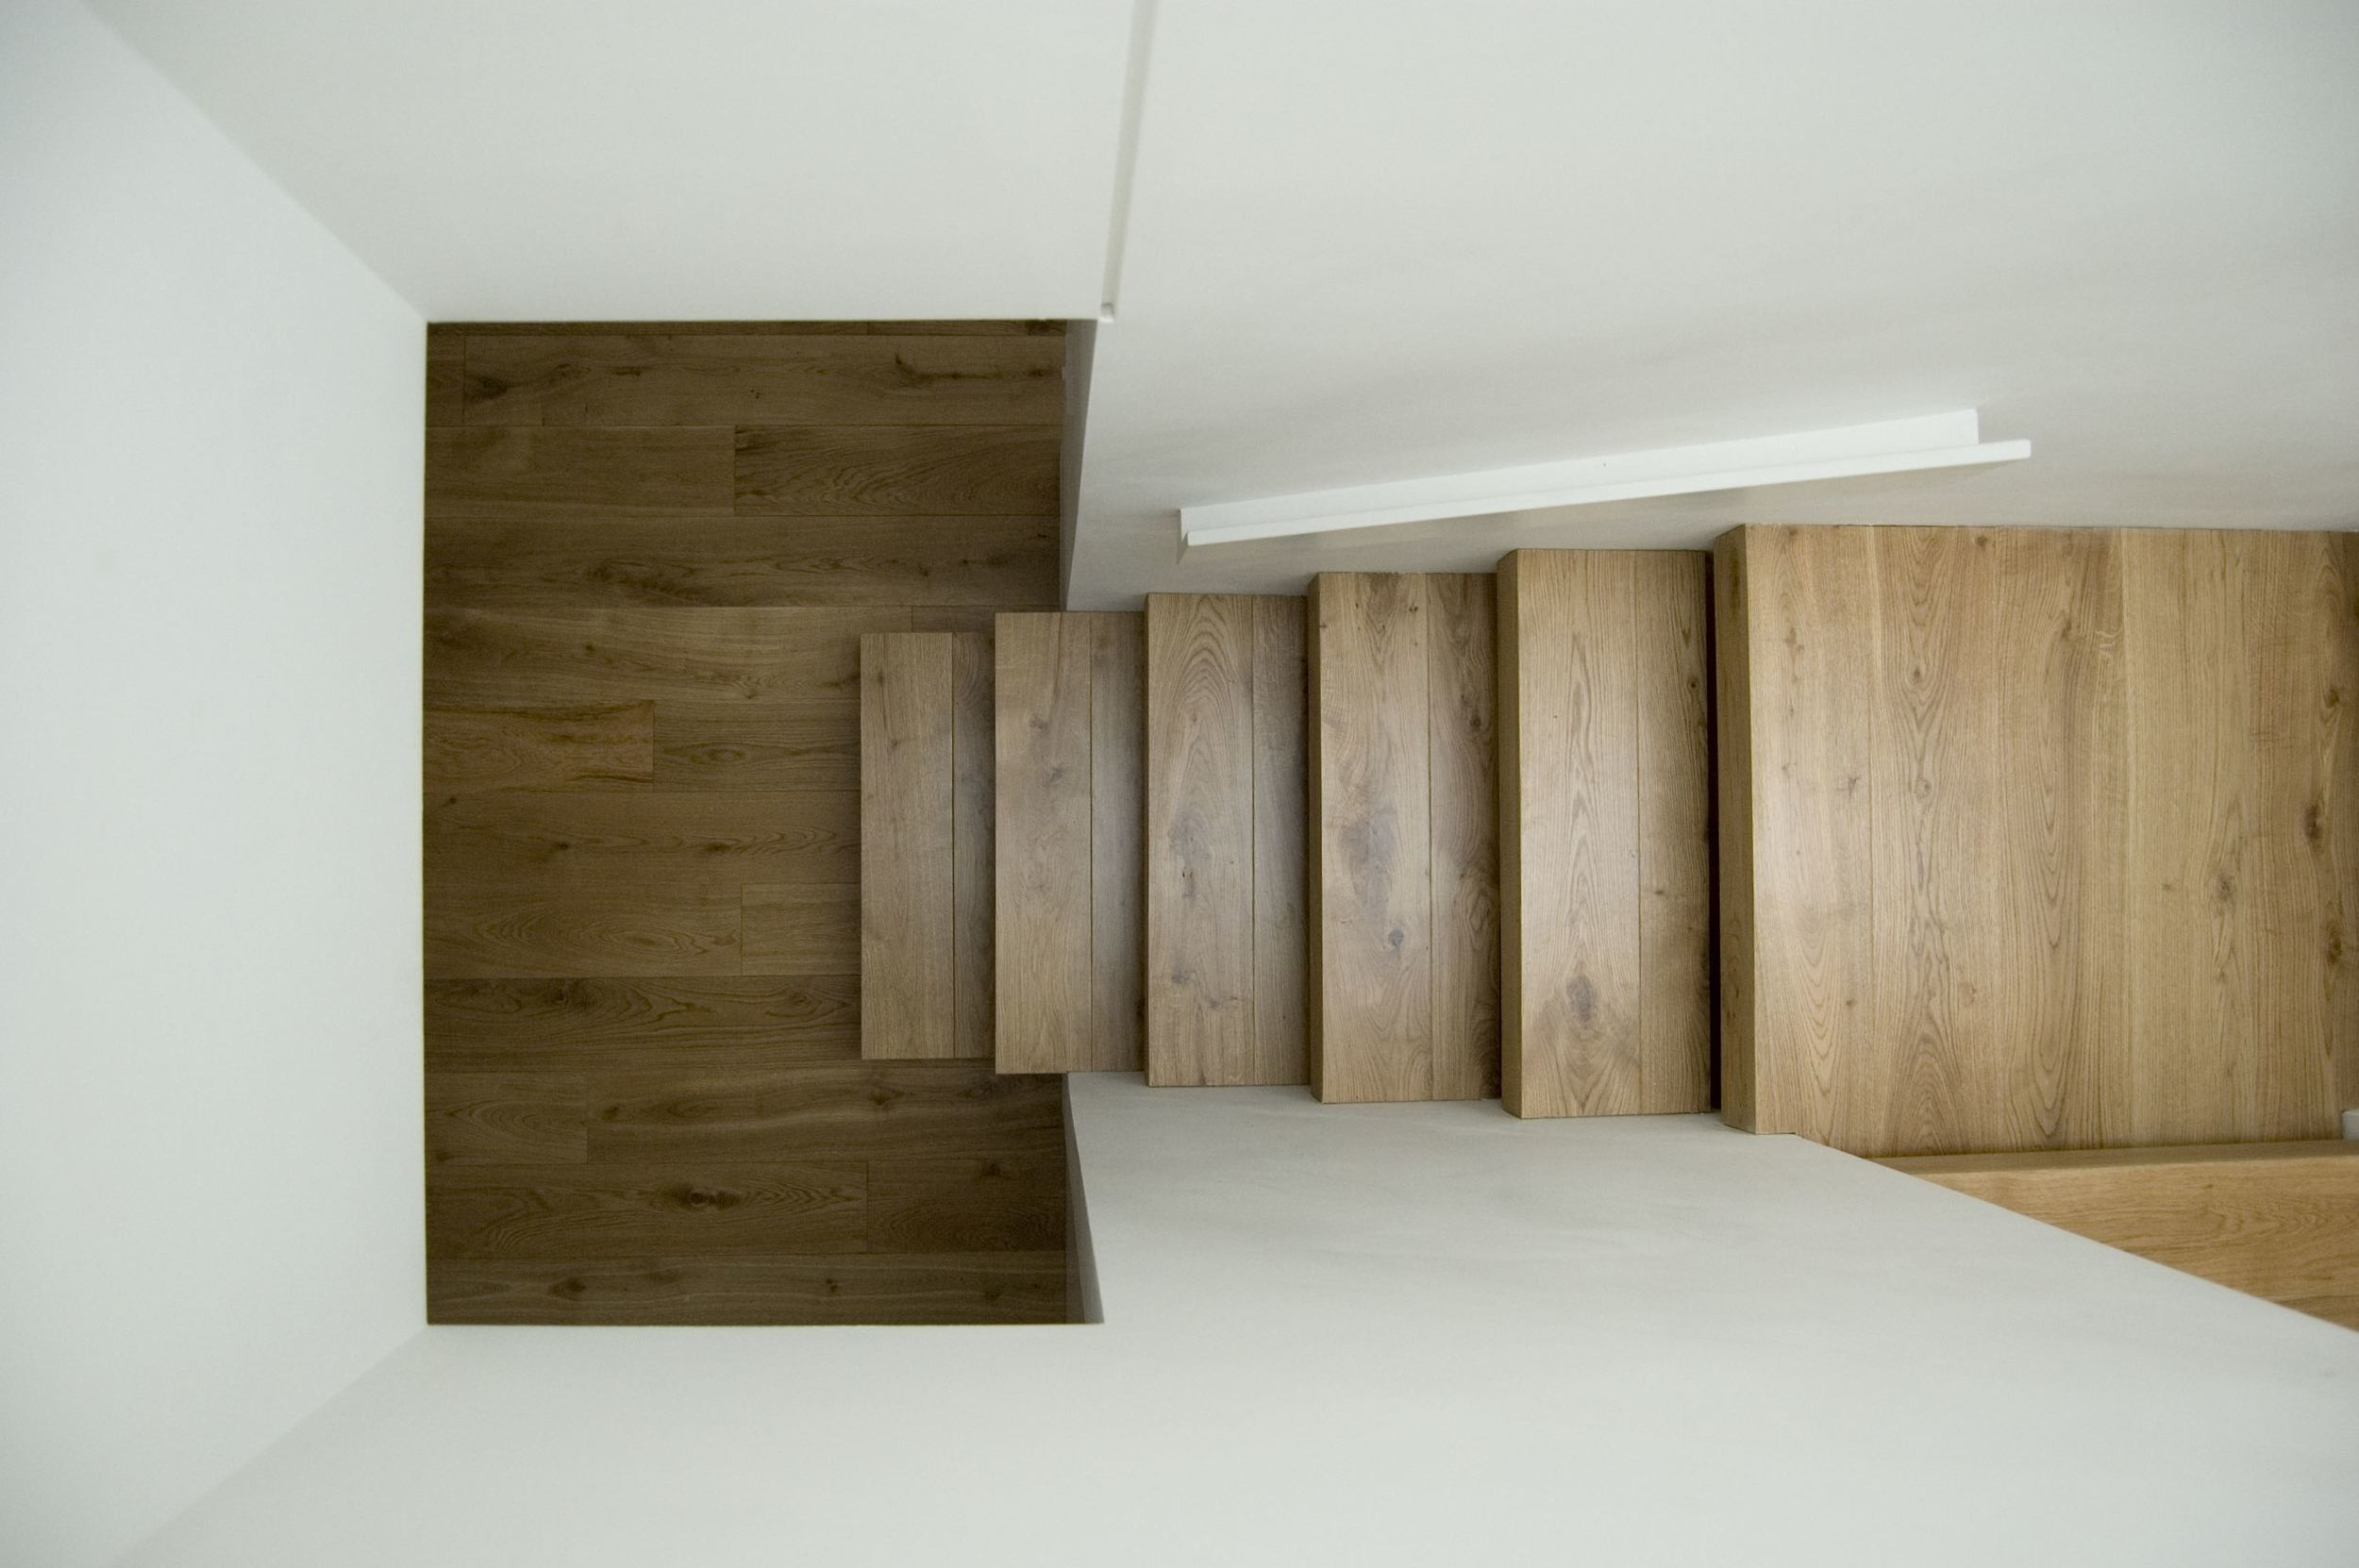 WTAD_staircase from above.jpg